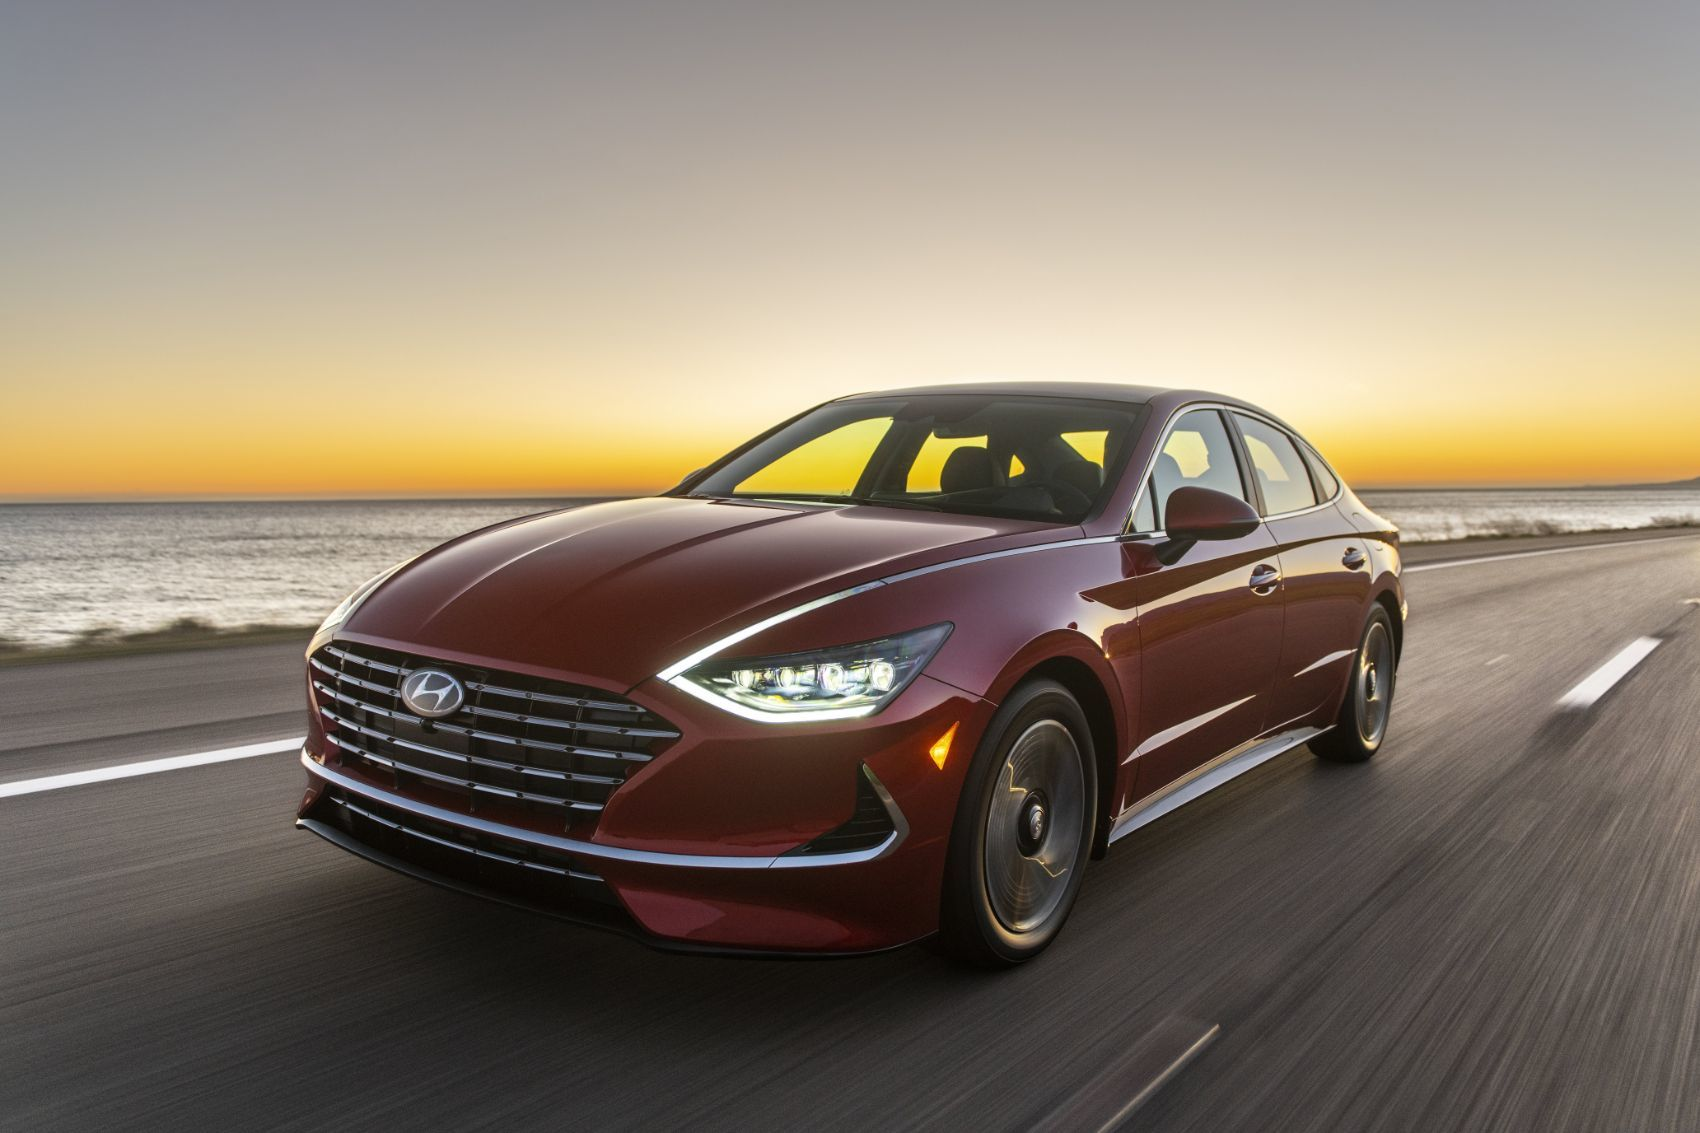 2020 Hyundai Sonata Hybrid: New King of Hybrid Sedans? 15